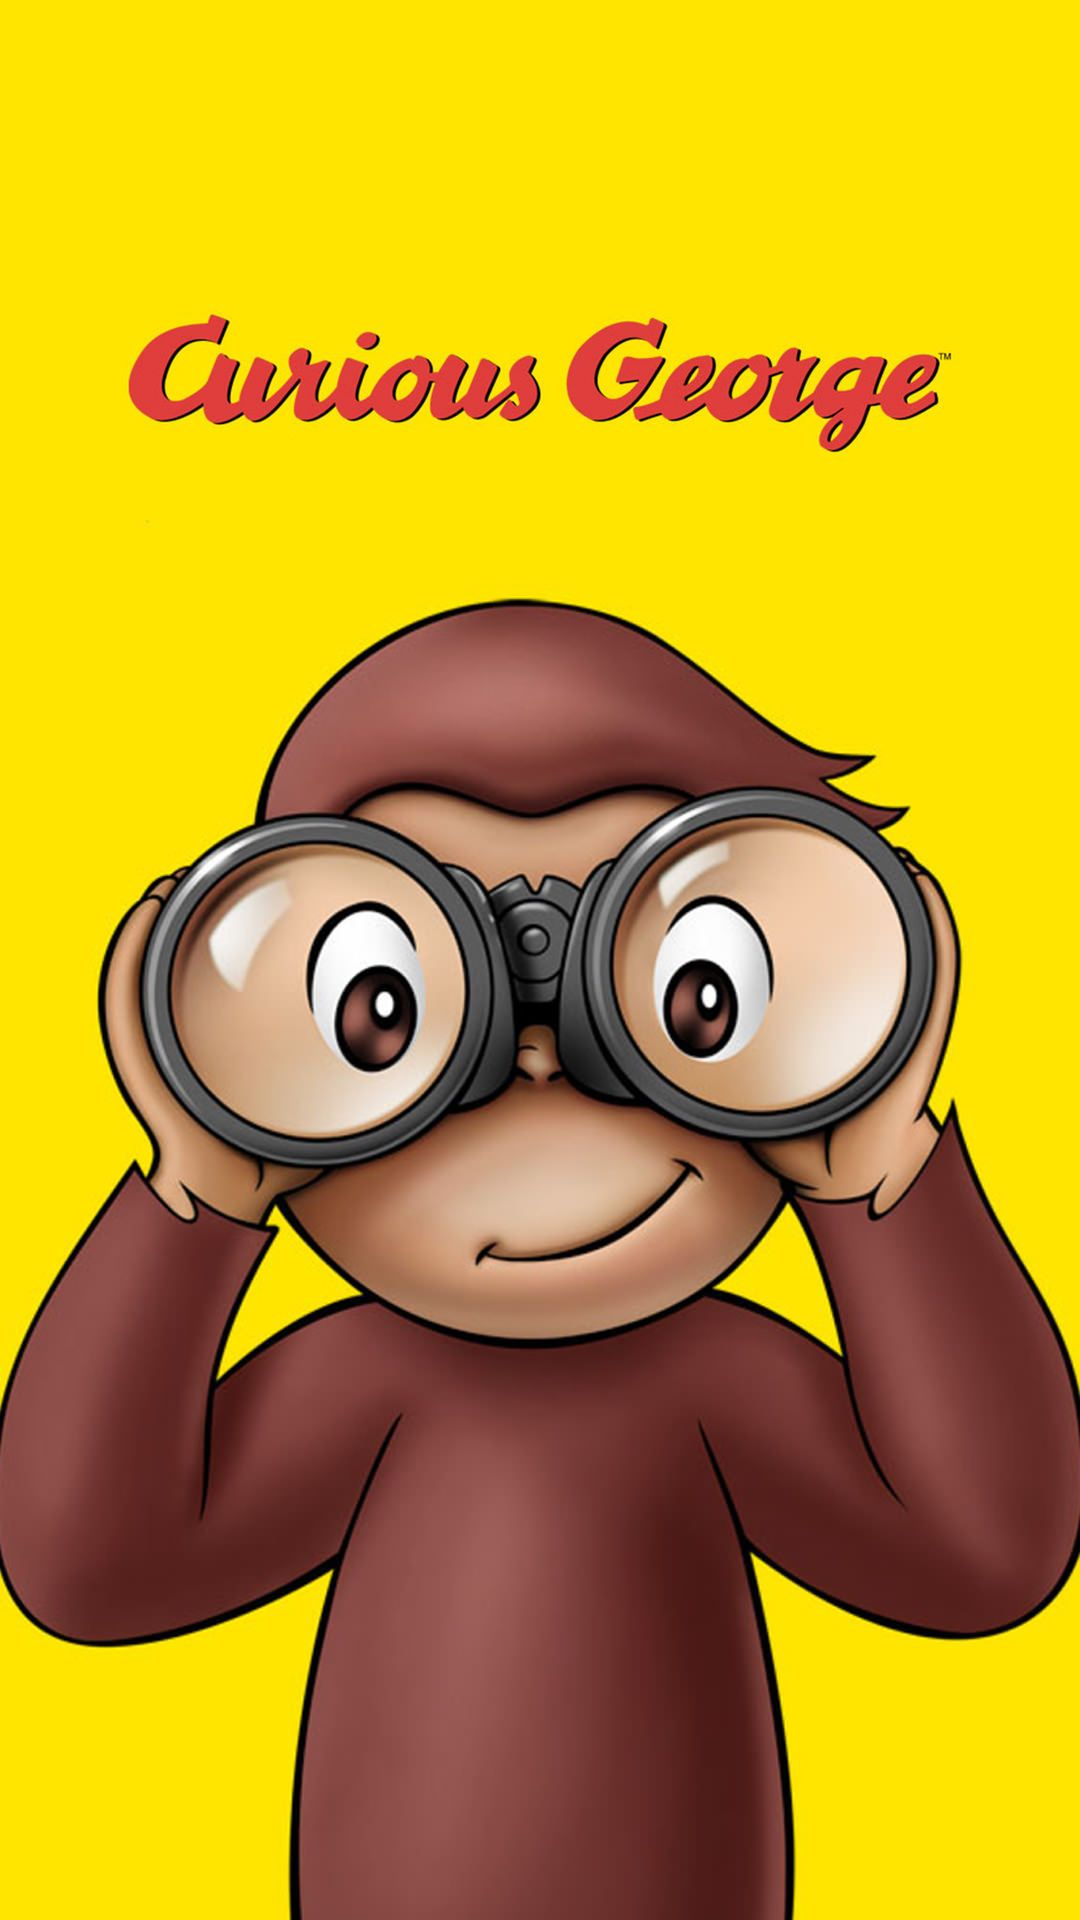 Curious George iPhone Wallpaper おさるのジョージのiPhone壁紙